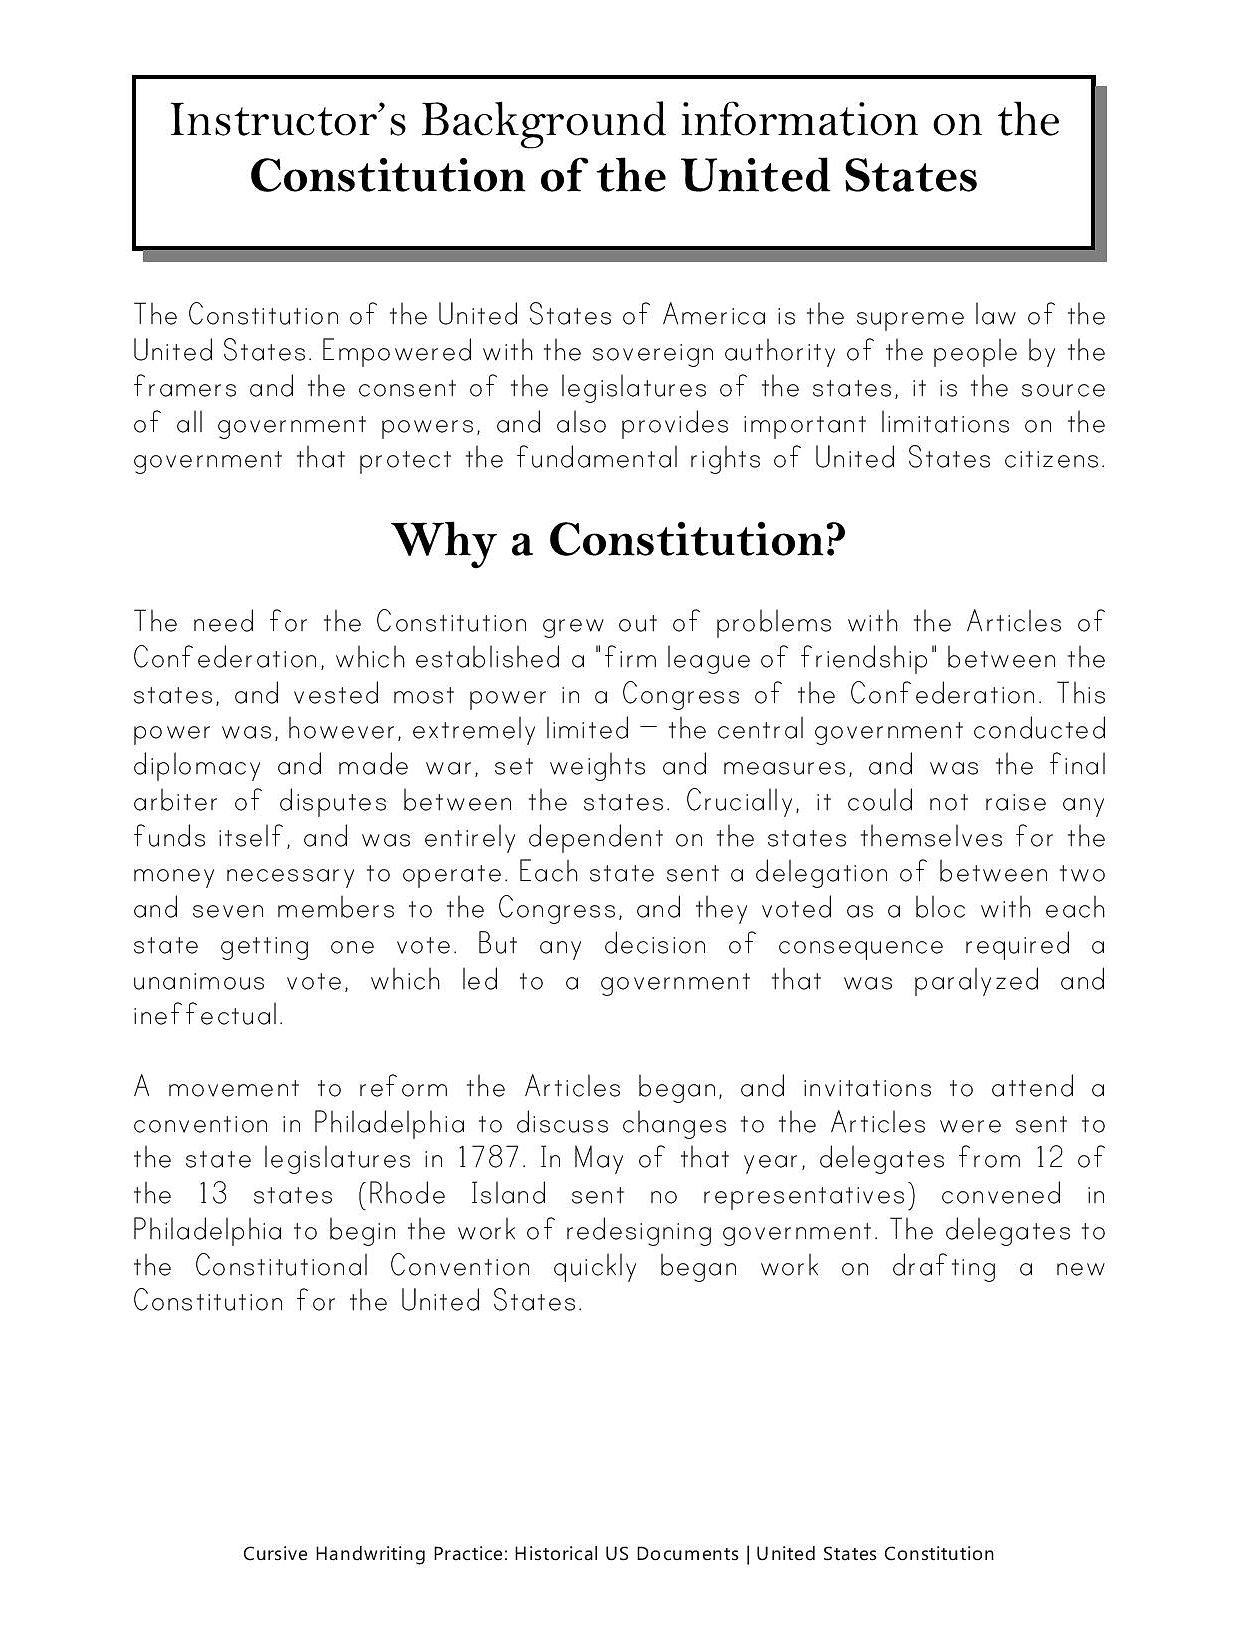 worksheet Us Constitution Worksheets 100 the us constitution worksheet solve then decode handwritingworkbooks cursive handwriting copybook u s constitution